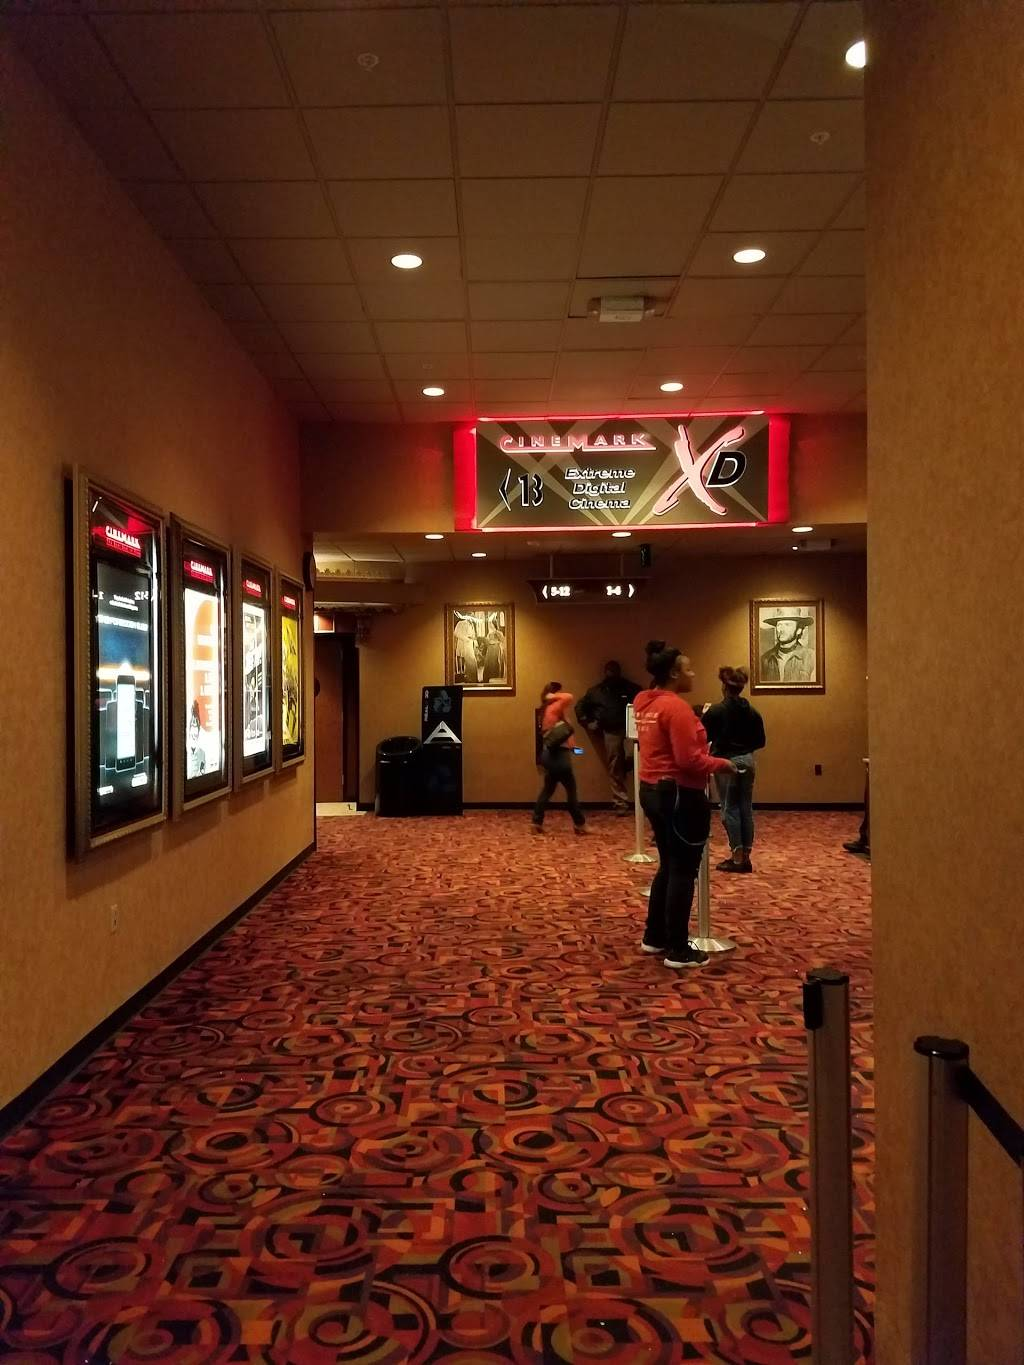 Cinemark at Pearland and XD | meal takeaway | 3311 Silverlake Village Dr, Pearland, TX 77581, USA | 7134369065 OR +1 713-436-9065